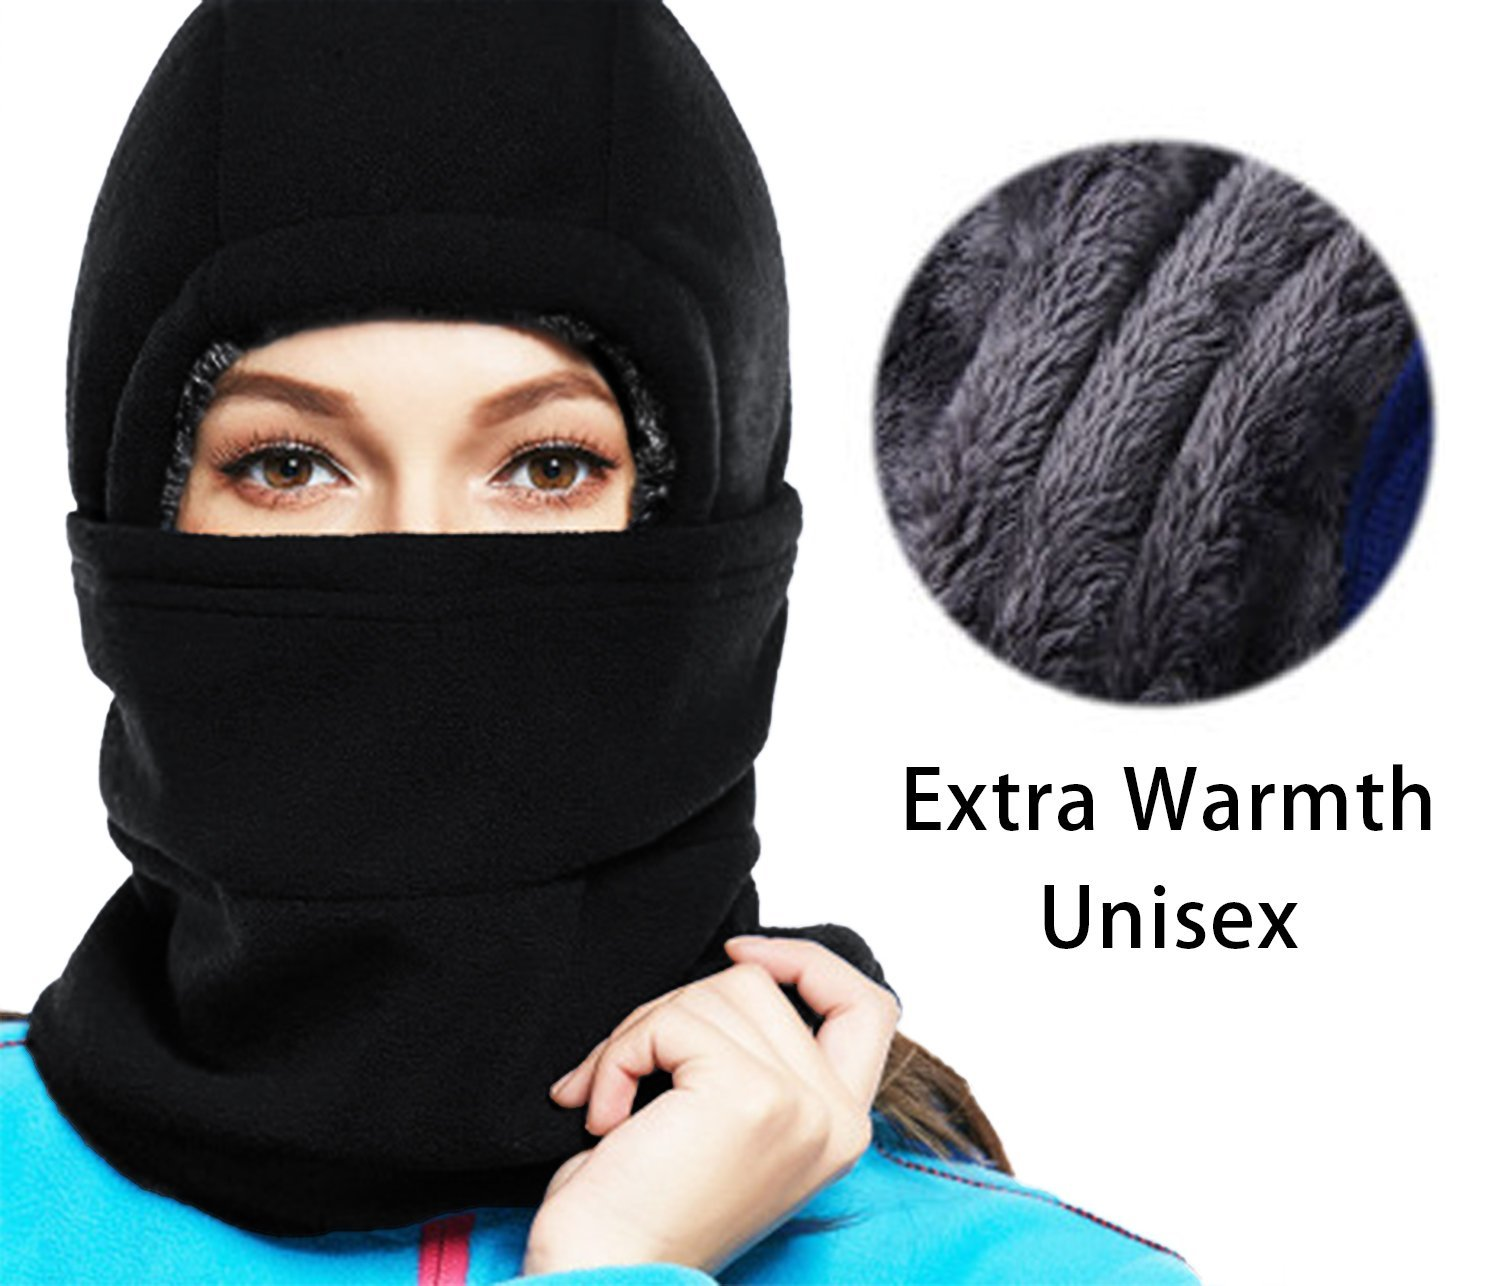 40493b98e3e Balaclava Ski Mask - Cold Weather Face Mask Motorcycle Neck Warmer or  Tactical Balaclava Hood - Plus velvet - Ultimate Thermal Retention in the  Outdoors ...